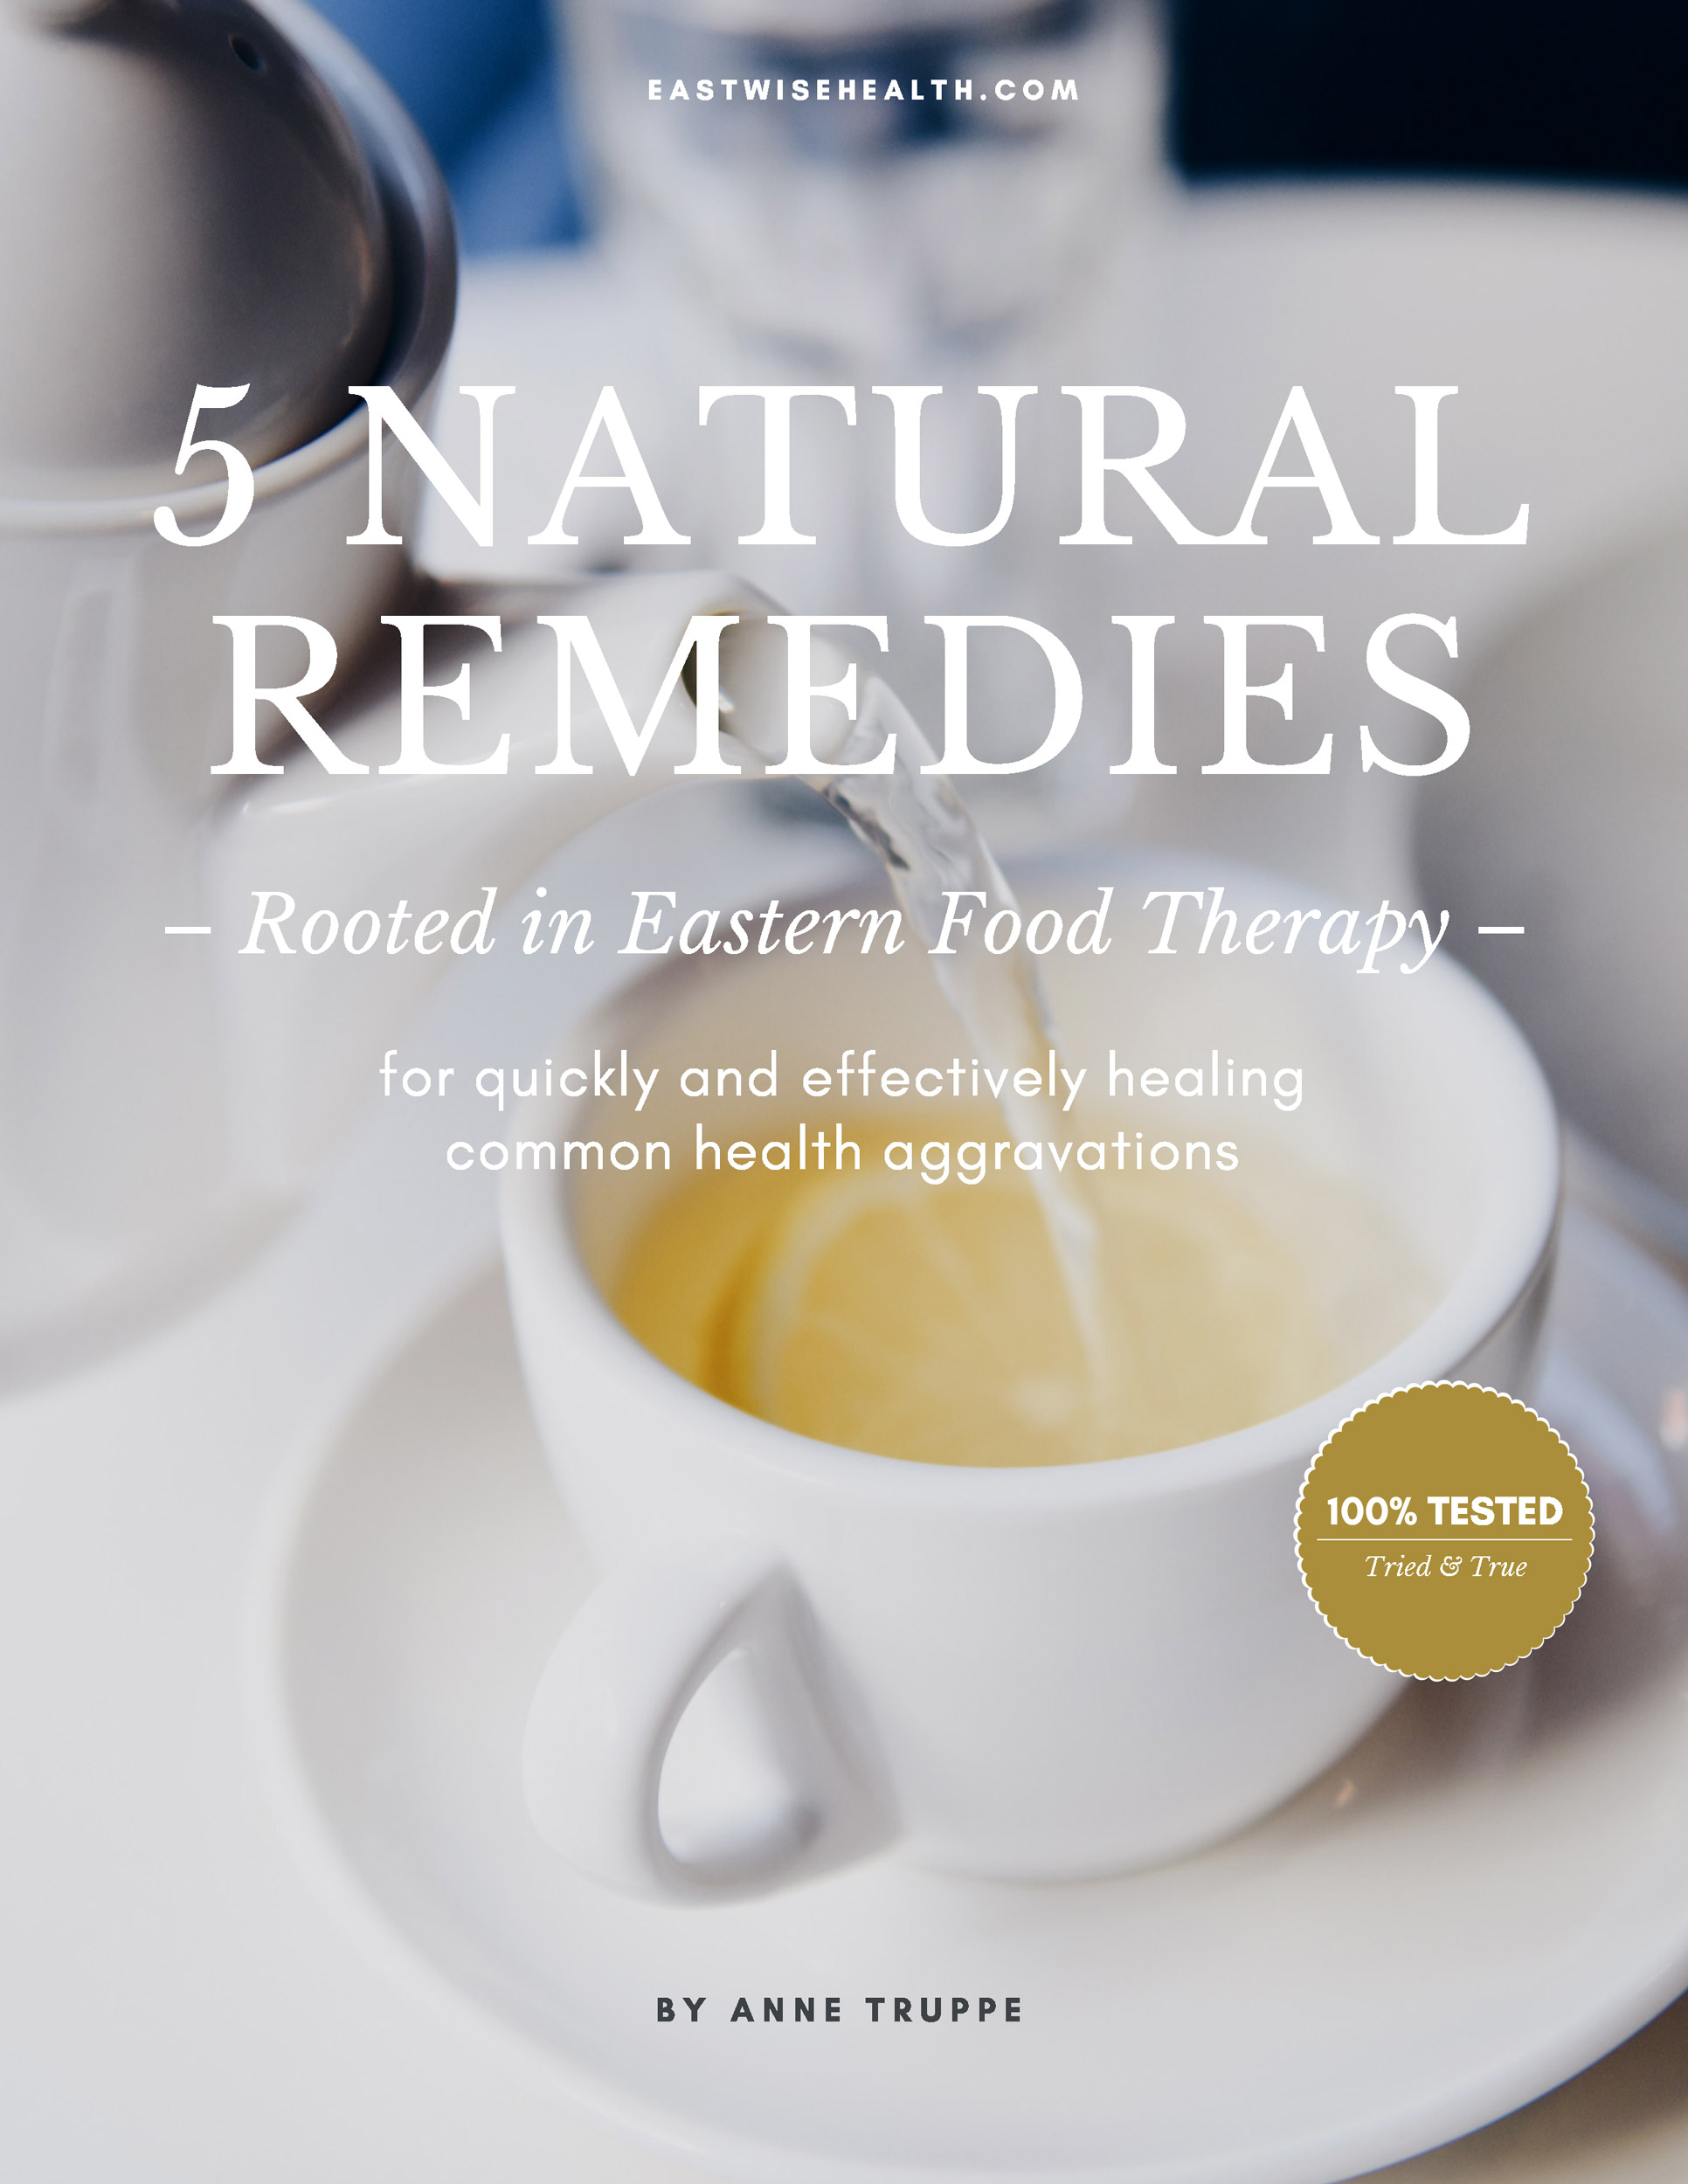 Eastwise-5-Natural-Remedies-Cover.jpg